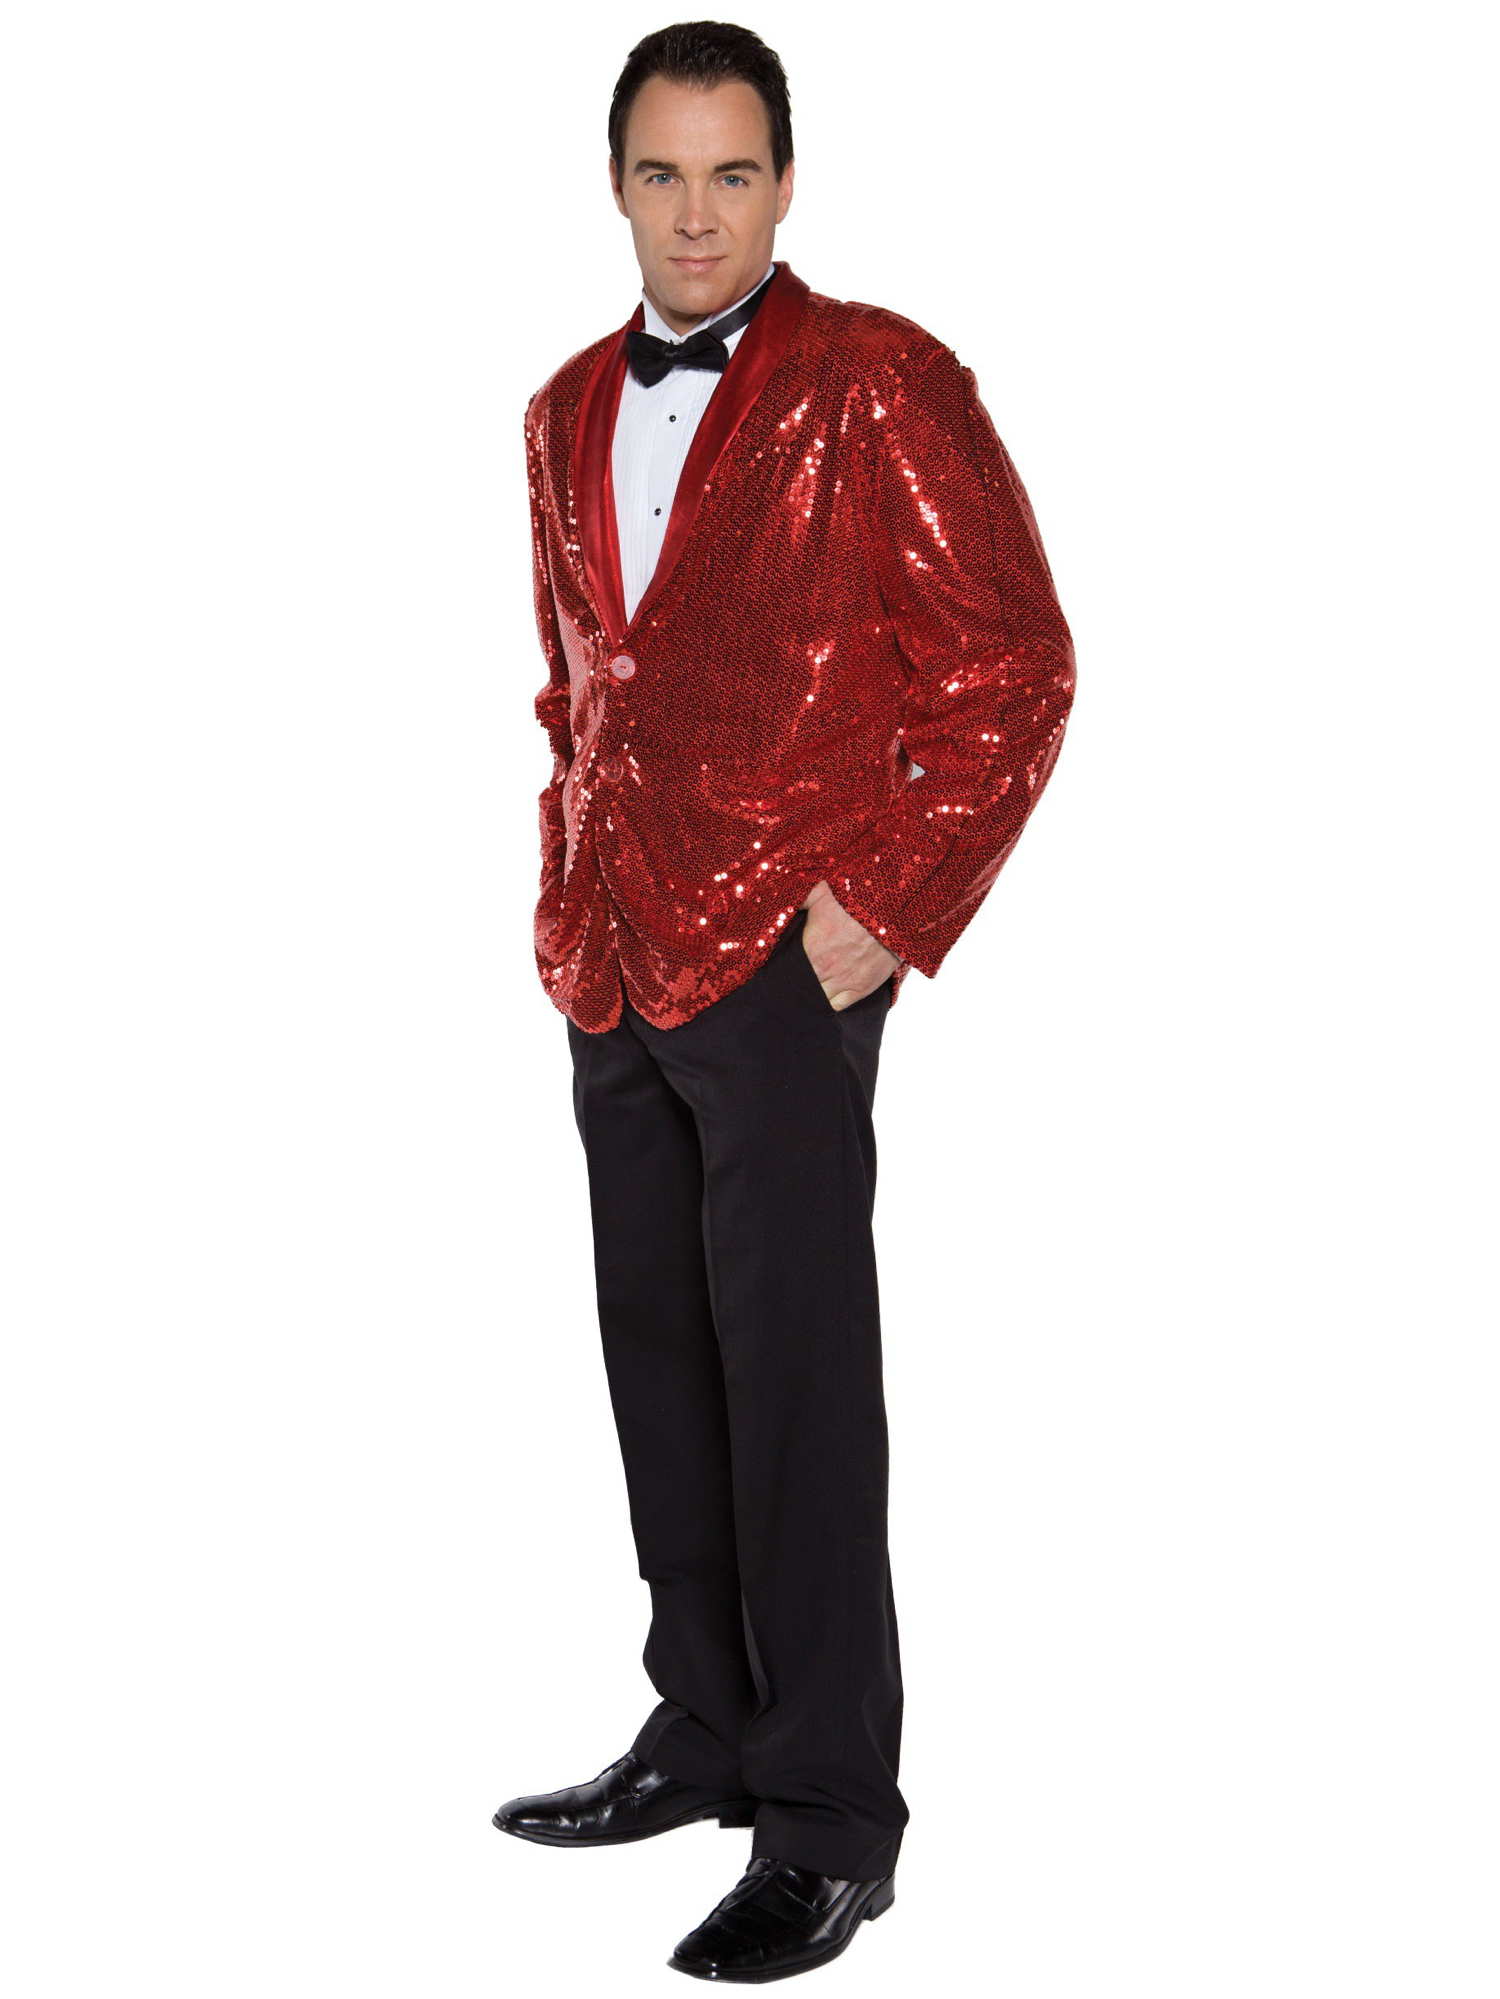 Sequin Red Jacket Magician Circus 1950s 1970s Disco Pimp Jazz Men Costume OS  sc 1 st  eBay & Sequin Red Jacket Magician Circus 1950s 1970s Disco Pimp Jazz Men ...